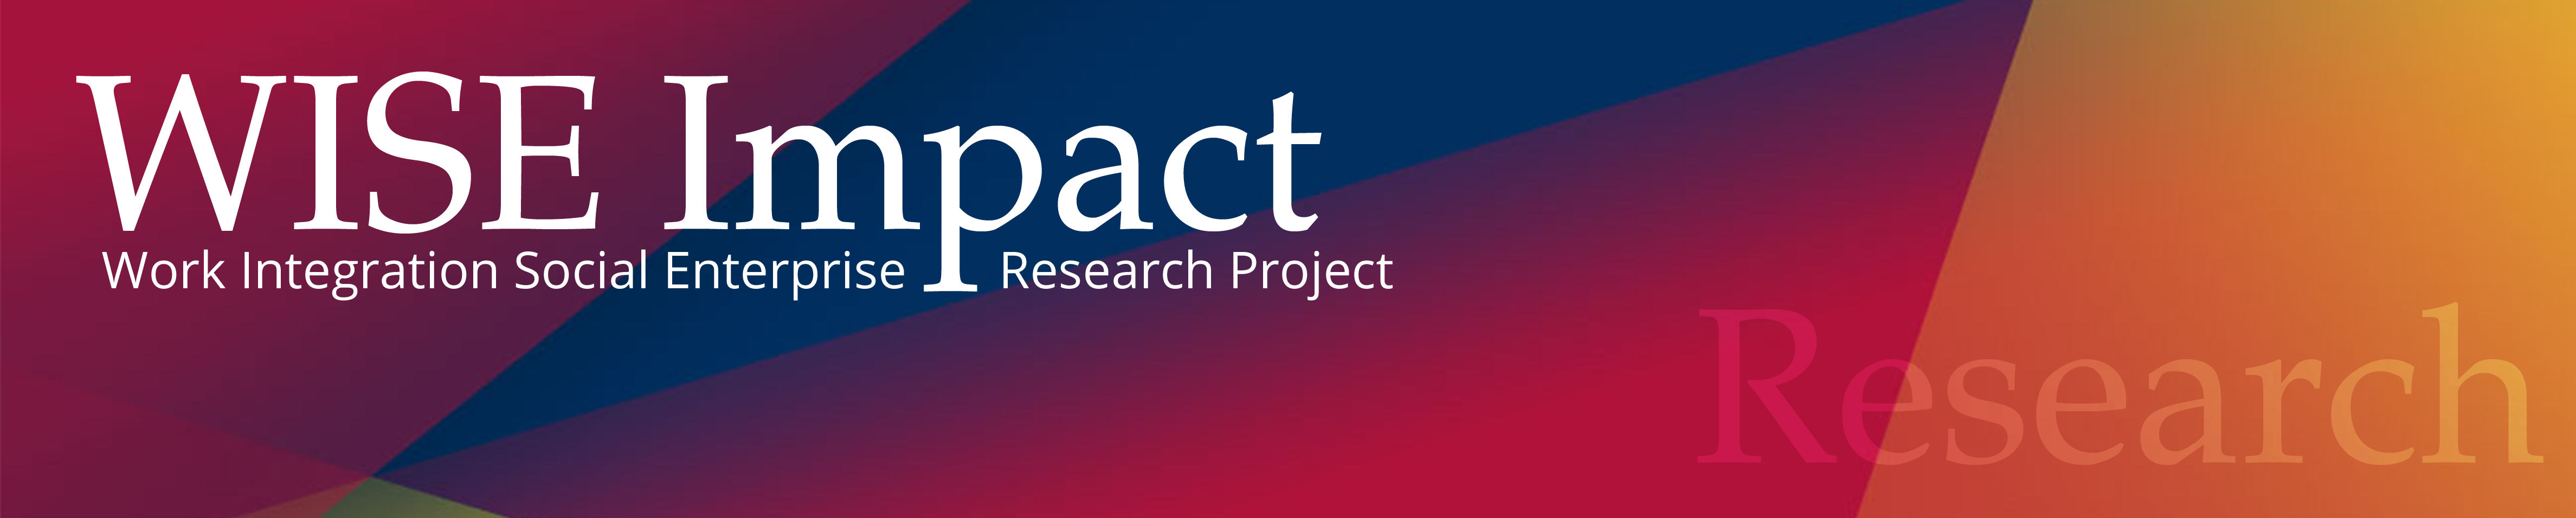 WISE - Research Project